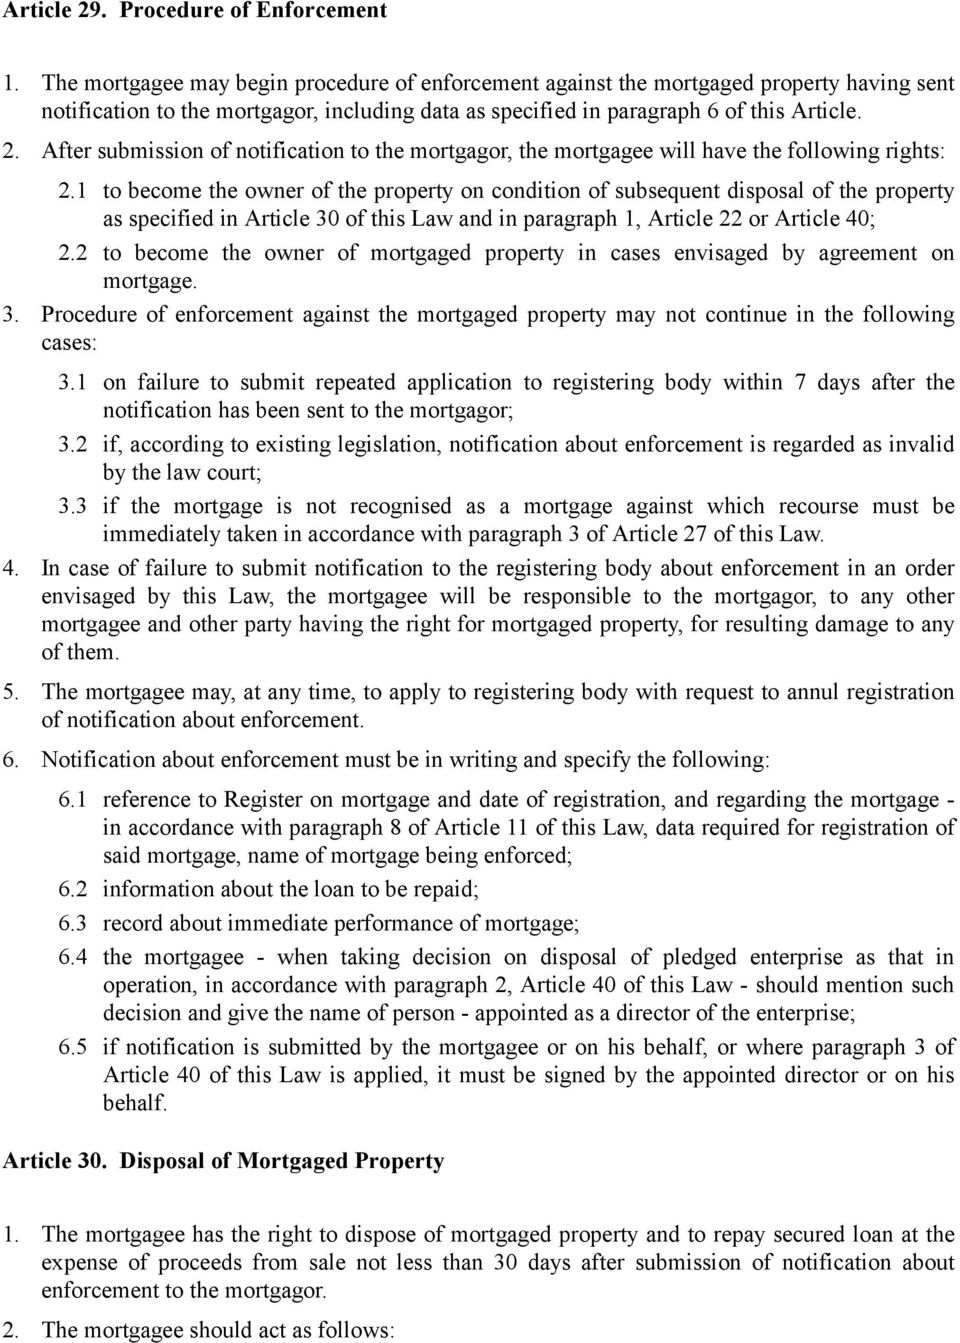 After submission of notification to the mortgagor, the mortgagee will have the following rights: 2.